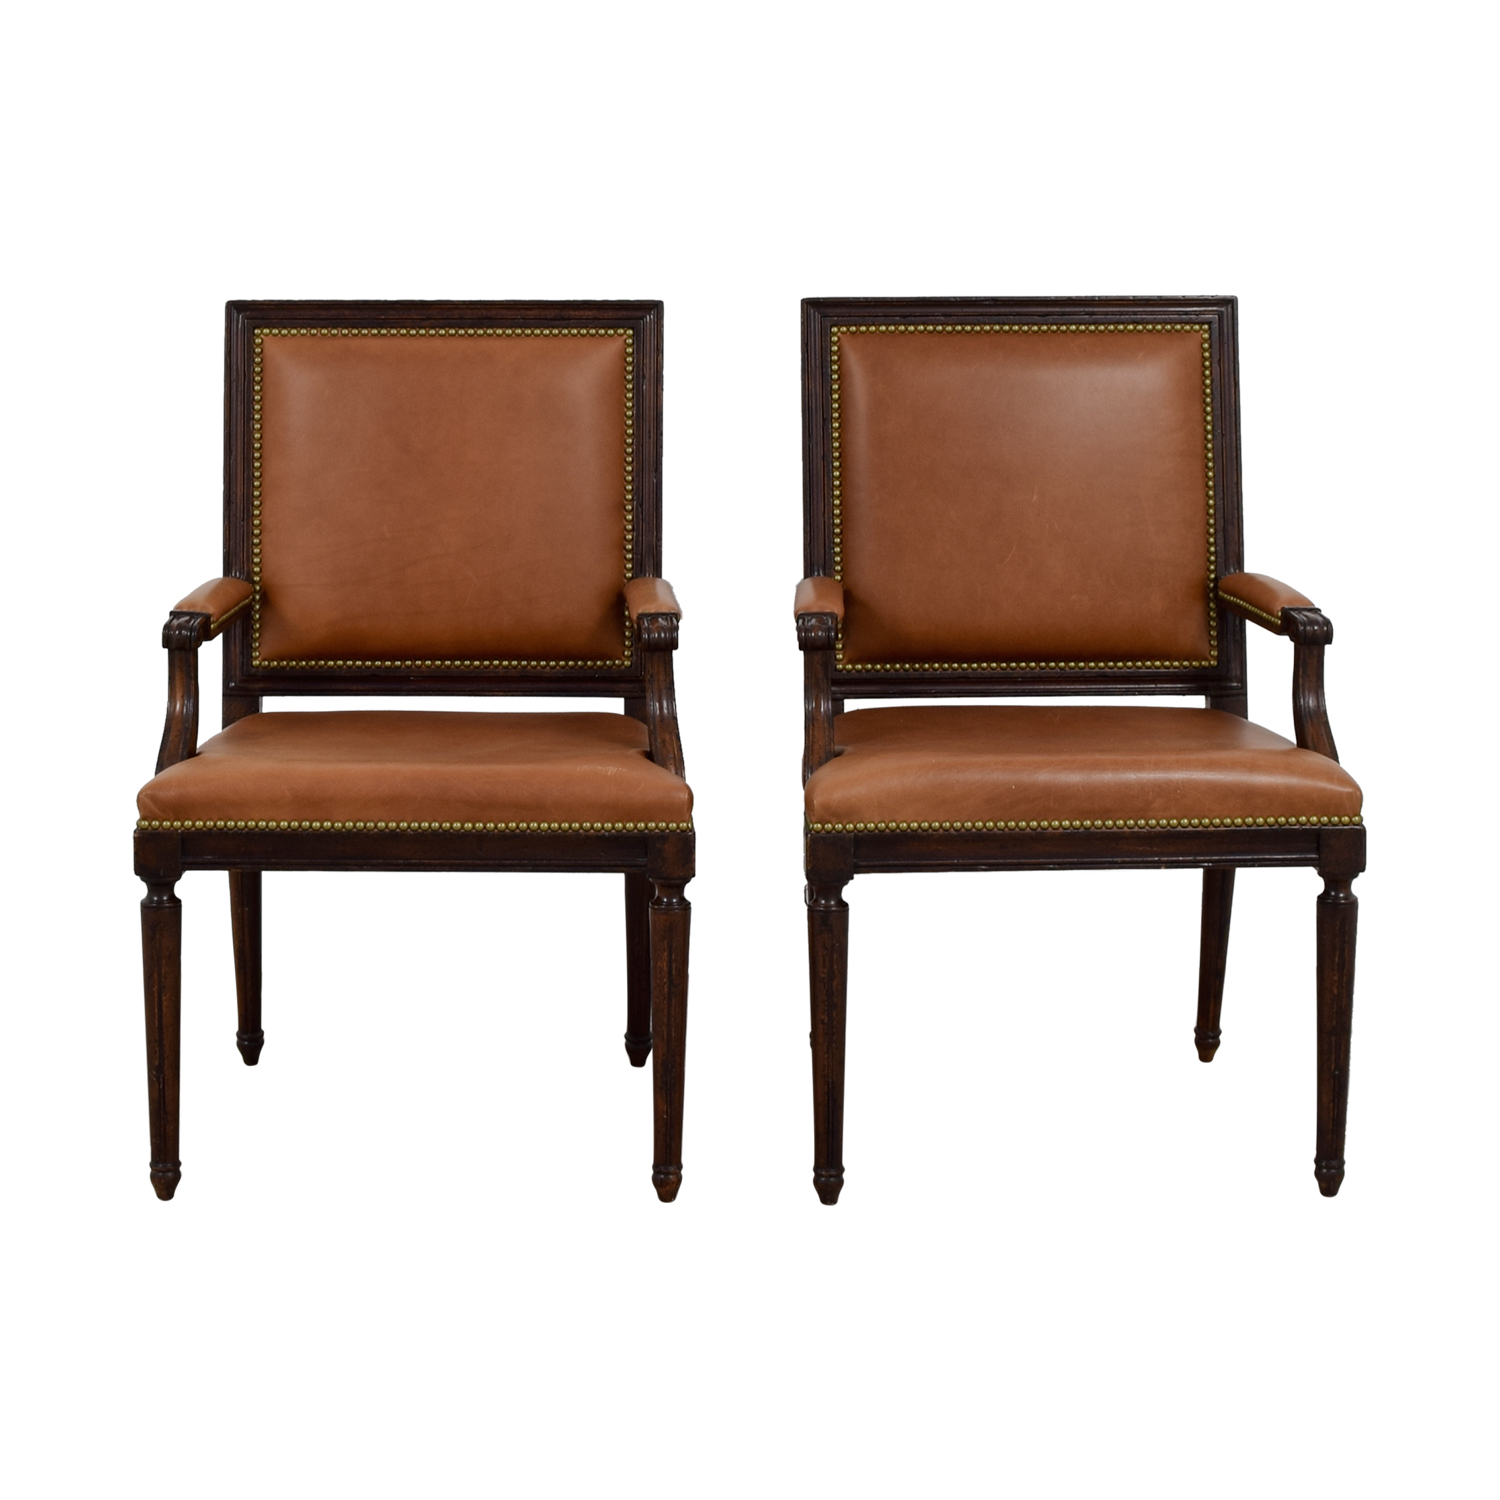 Henredon Chair 64 Off Henredon Furniture Henredon Brown Leather Nailhead Accent Chairs Chairs